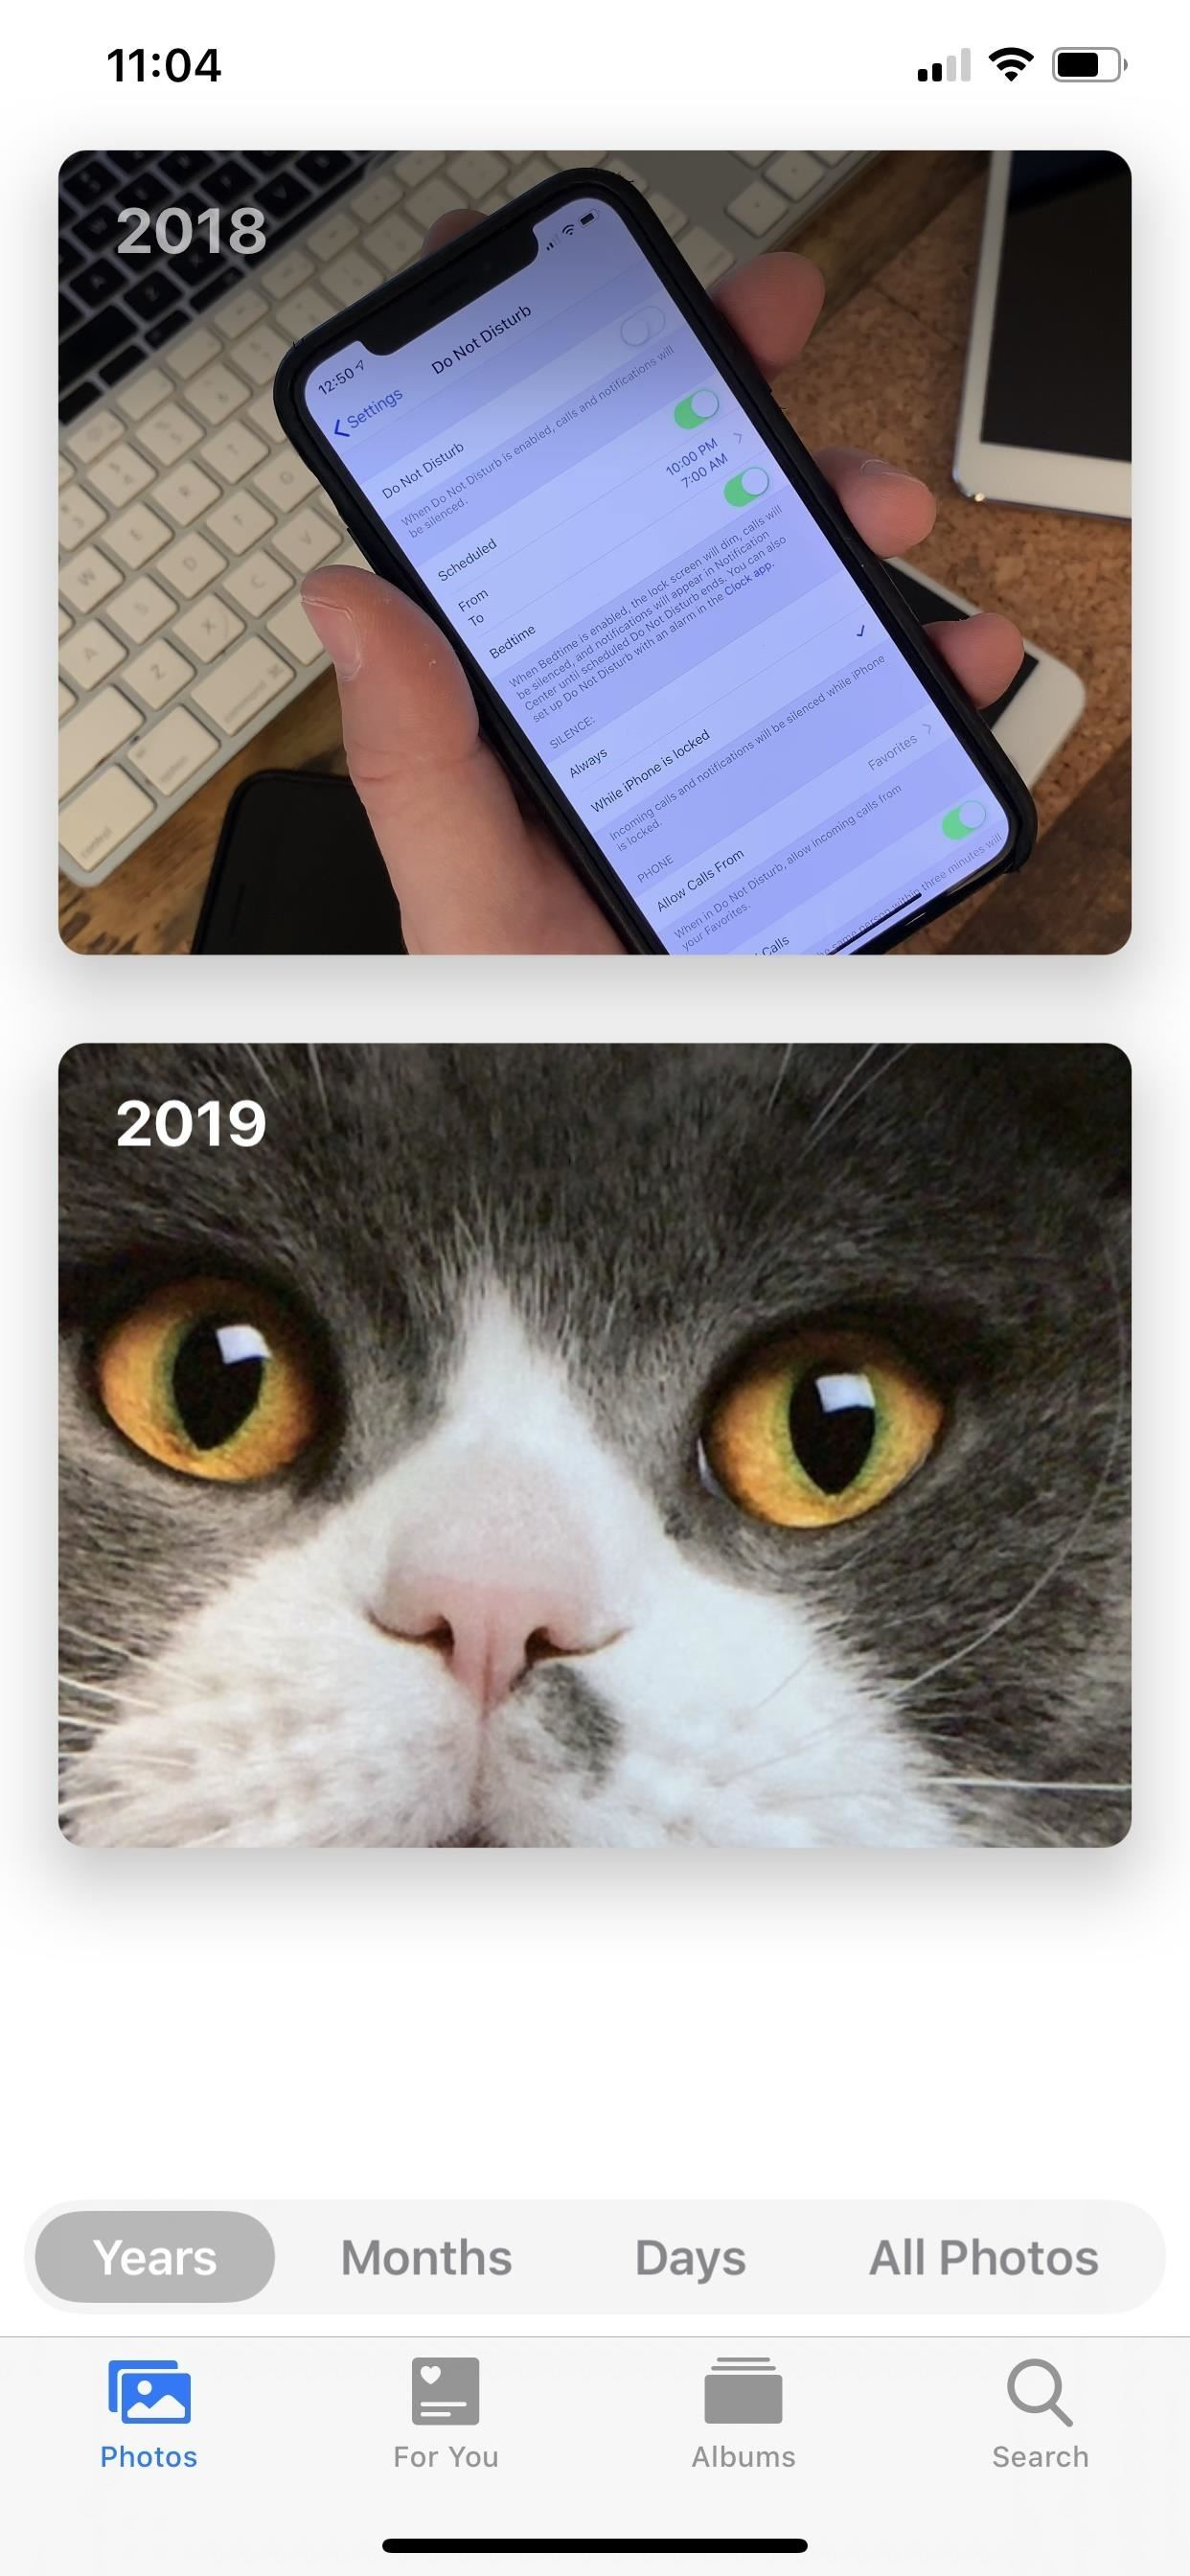 200+ exciting new iOS 13 features for your iPhone